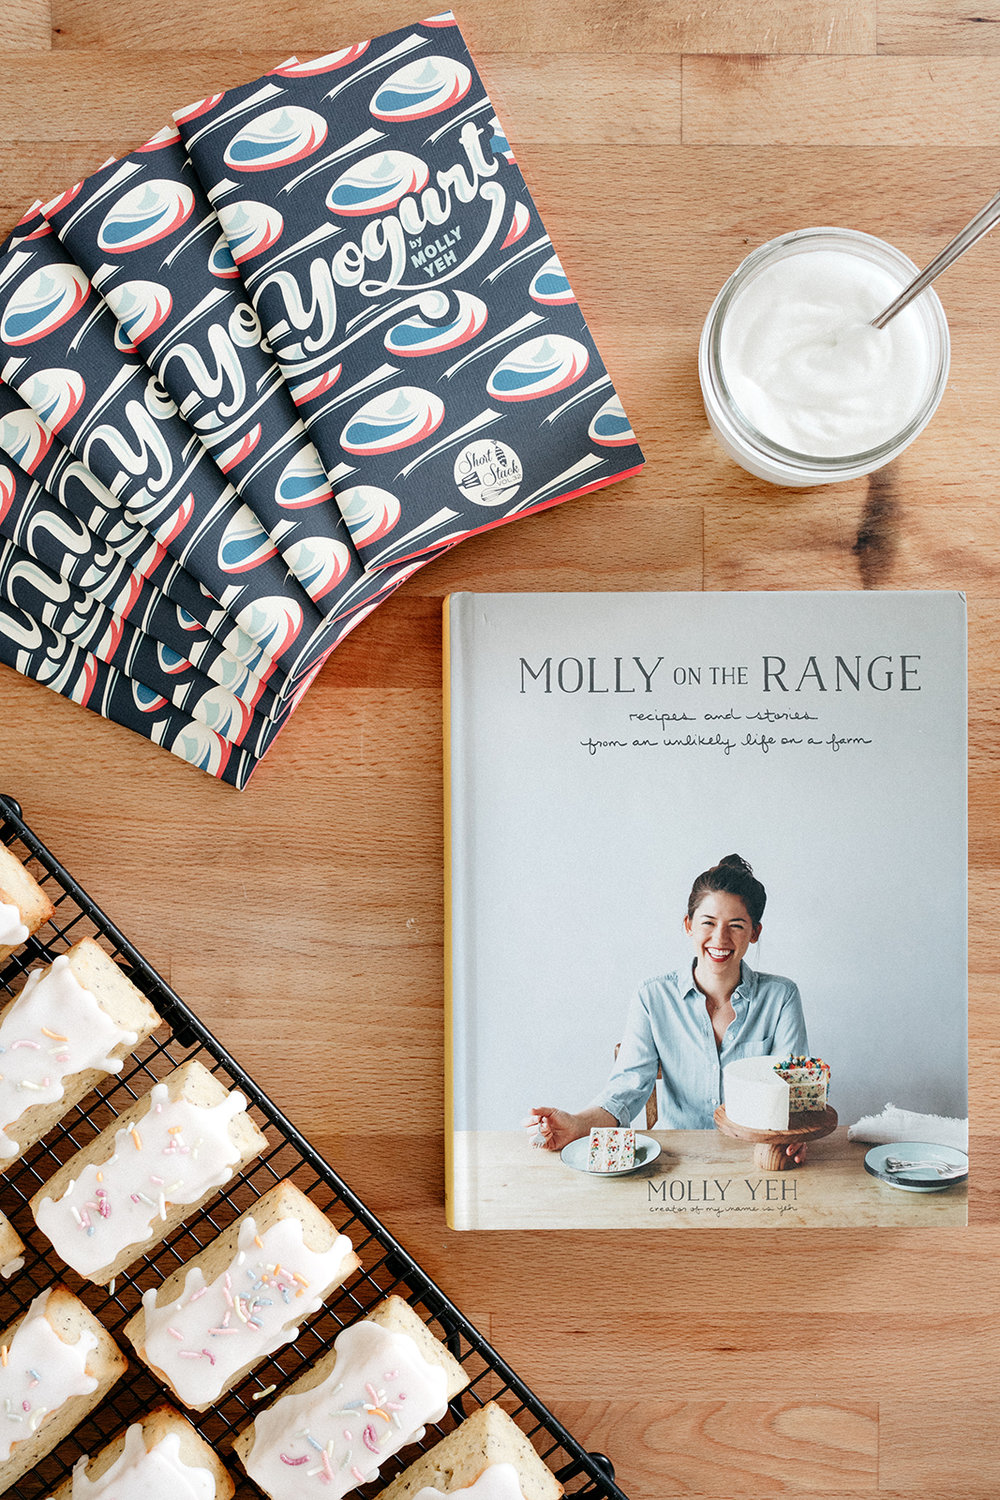 mollyyeh-yogurt-book-19.jpg